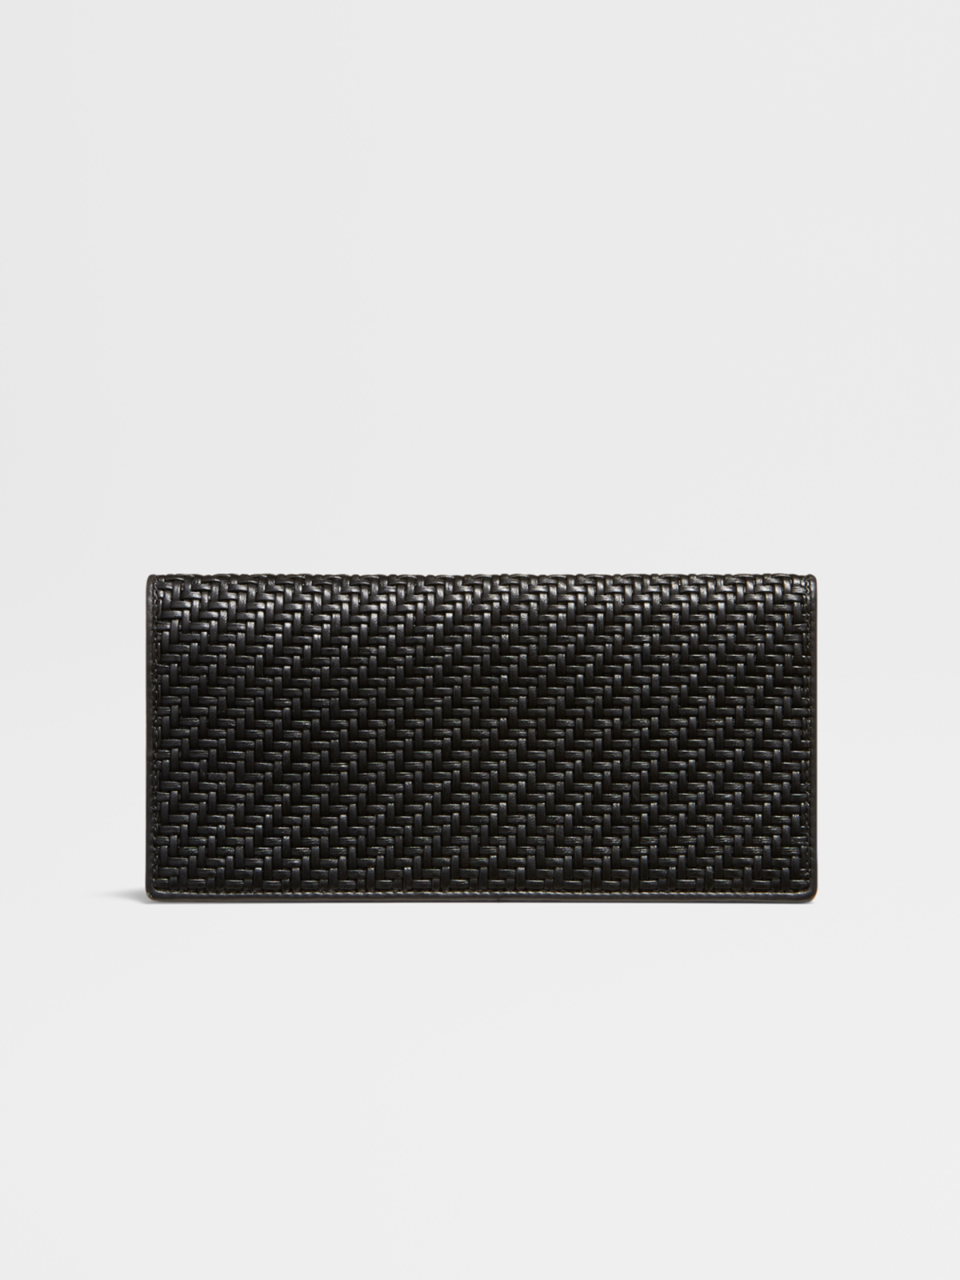 PELLETESSUTA™ Black Continental Wallet